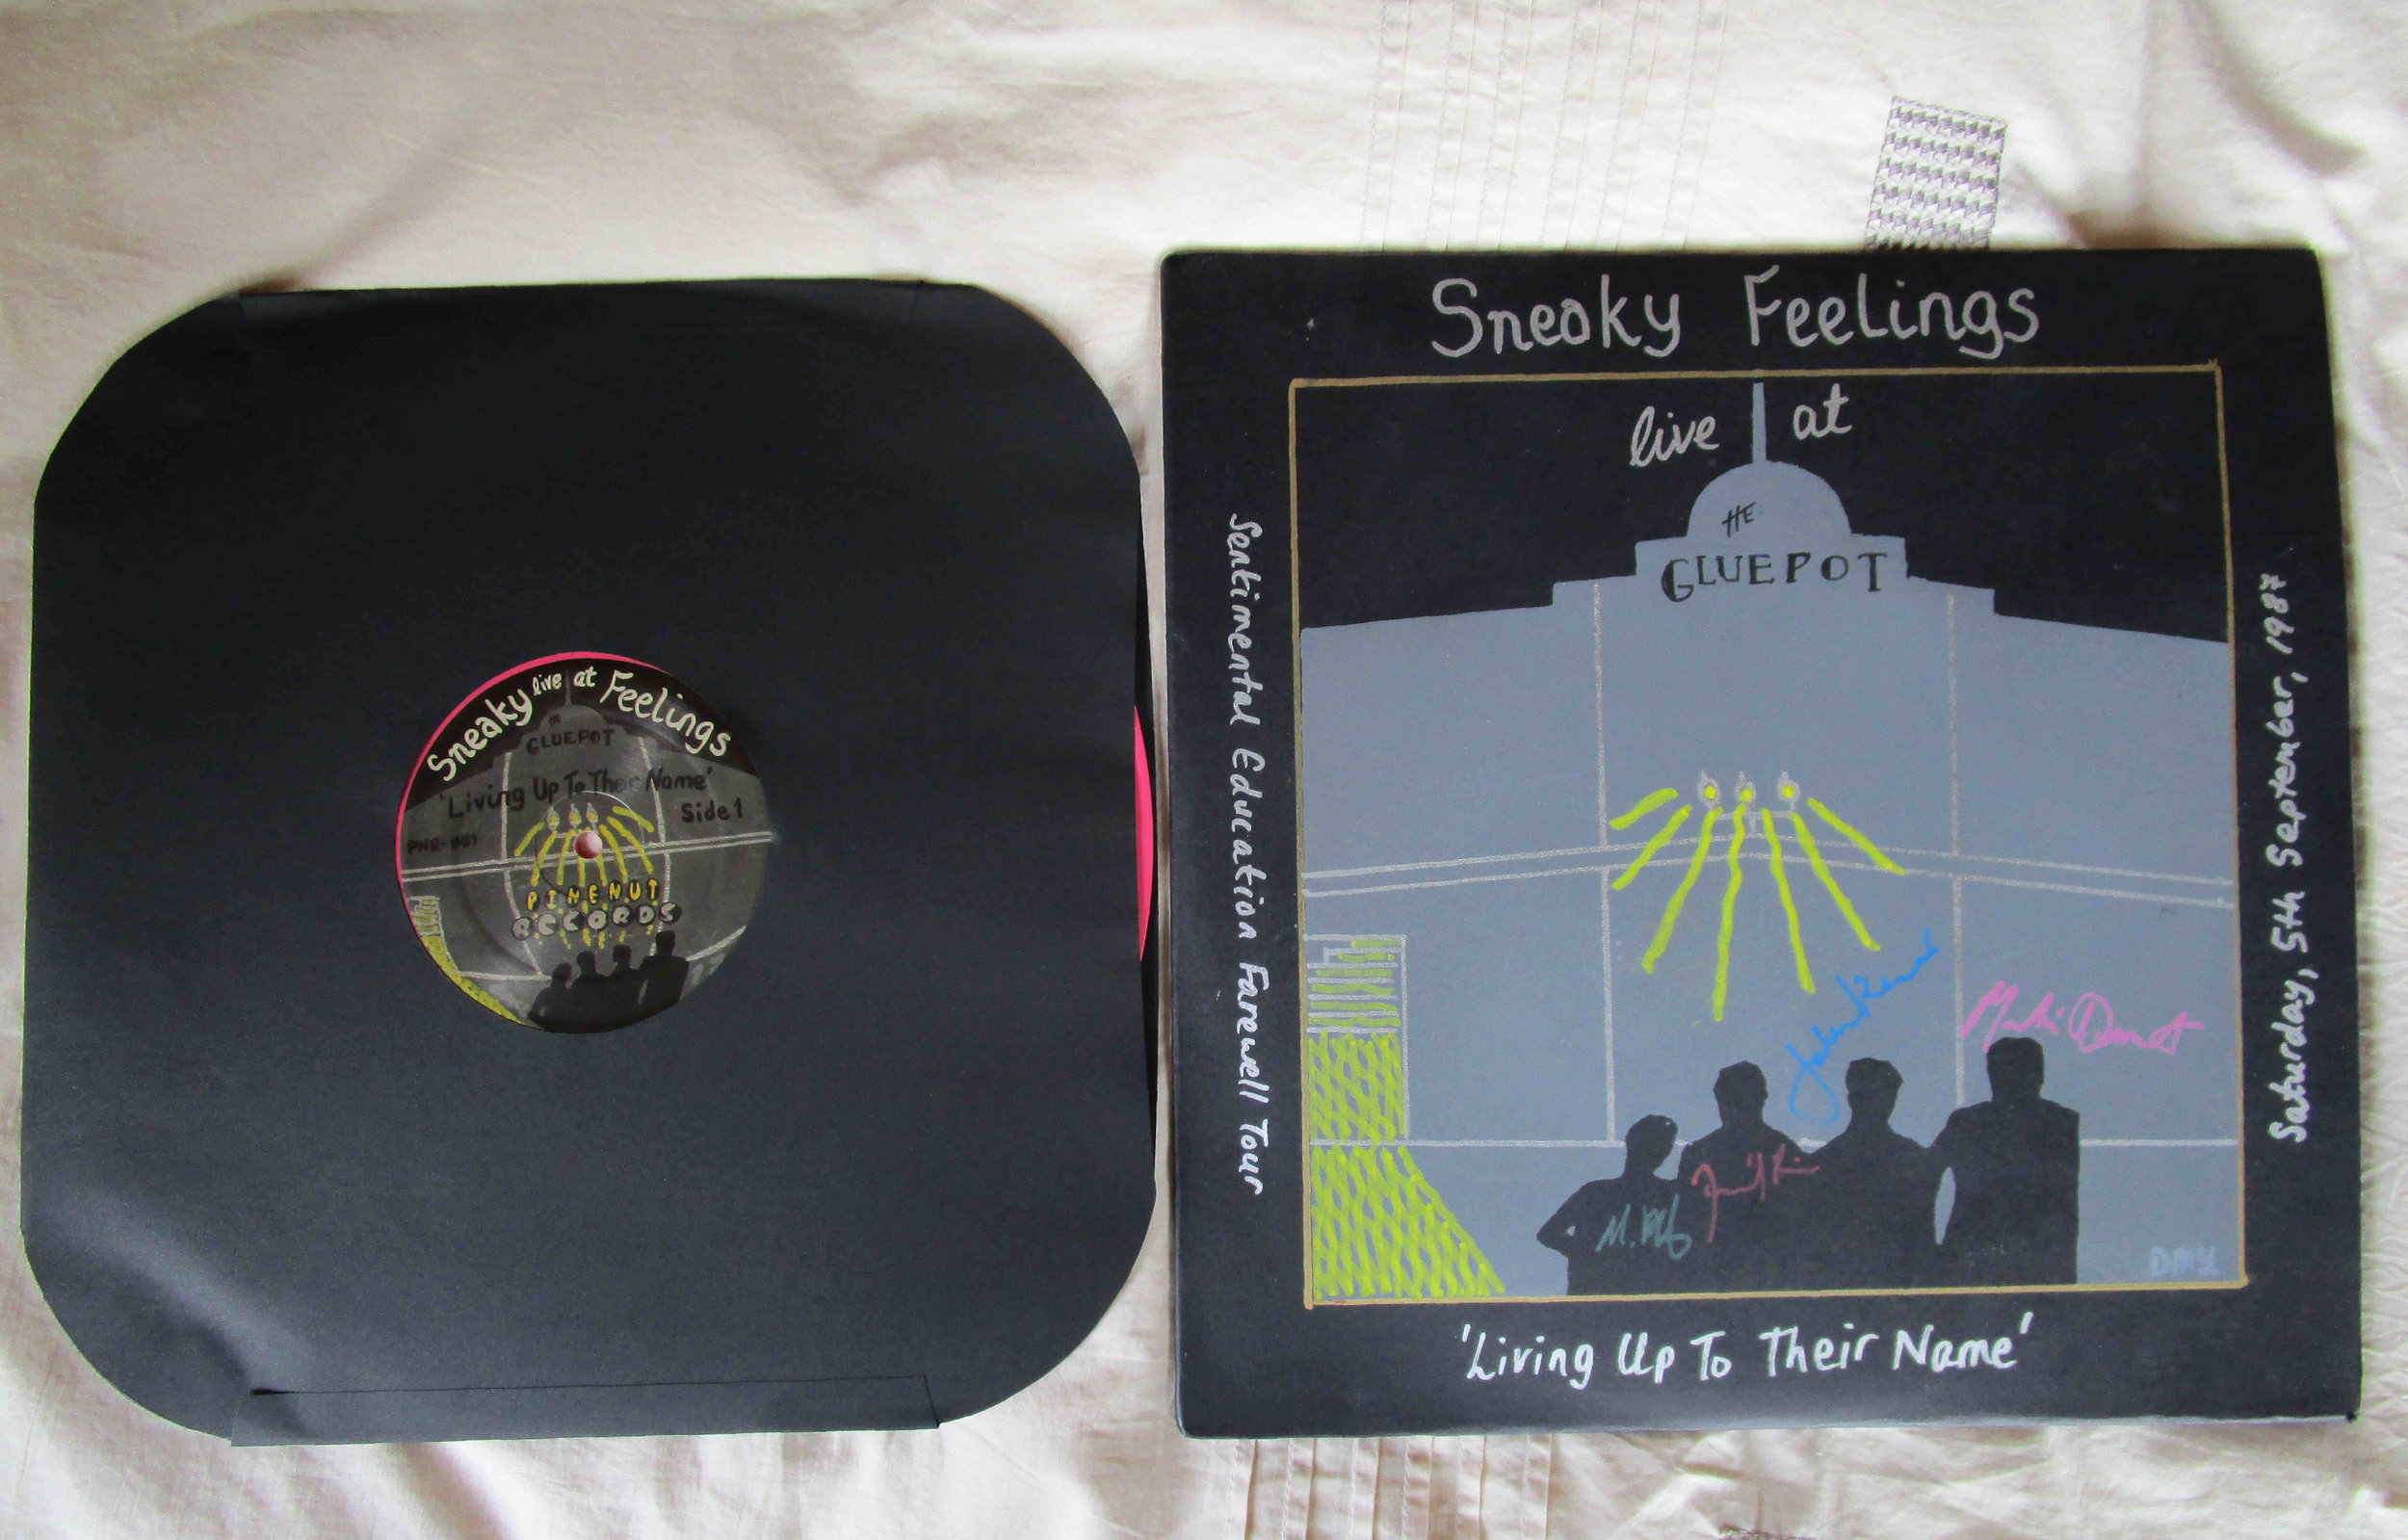 Sneaky Feelings LP 'Living Up To Their Name' Live At The Gluepot 1987 Collectors' and Limited Editions 180gsm Pink Vinyl    Pressed by United Record Pressing Nashville, TN, USA. One-off pressing of 300    Hand screen printed covers - heavy gauge solid black card flipback cover on collector's and limited editions, hand screen printed on standard white cover on Record Store Day Edition    Tape transfer and digital mastering by Steve McGough at Stebbing Recording Centre, Auckland, New Zealand    Launch date Monday 20th November, 2017    50 numbered copies on PInenut Records' first issue PNR-001, 16 of the 50 copies signed by the whole band    Plus a limited edition with various colour covers, with HD digital WAV download of full album, album format Side A/Side B    **************************************************************************************************************************************************************    Record Store Day 2018 'Black Sheep-White Sheep' edition LP 180g Pink Vinyl 150 copies made, with 6 bonus tracks on Bandcamp download, and a sew on tour patch issued at selected record shops across New Zealand and at Amoeba Music in LA and San Fran, California USD 40.00 plus P&P ** 10 left as of 09.05.19    *************************************************************************************************************************************************************    Record Store Day 2018 'Black Sheep-White Sheep' edition Cdr, with HD-WAV download card for the whole album, and sew on tour patch USD 20.00 plus P&P    ** SOLD OUT **    ************************************************************************************************************************************************************    Remastered limited issue (60 copies) of the 1984 Live At The WIndsor Castle tape PNR-002 originally issued on Industrial Tapes in 1984 sold with the collectors' edition only (50 copies worldwide) HD download closed **    ** SOLD OUT **    ***************************